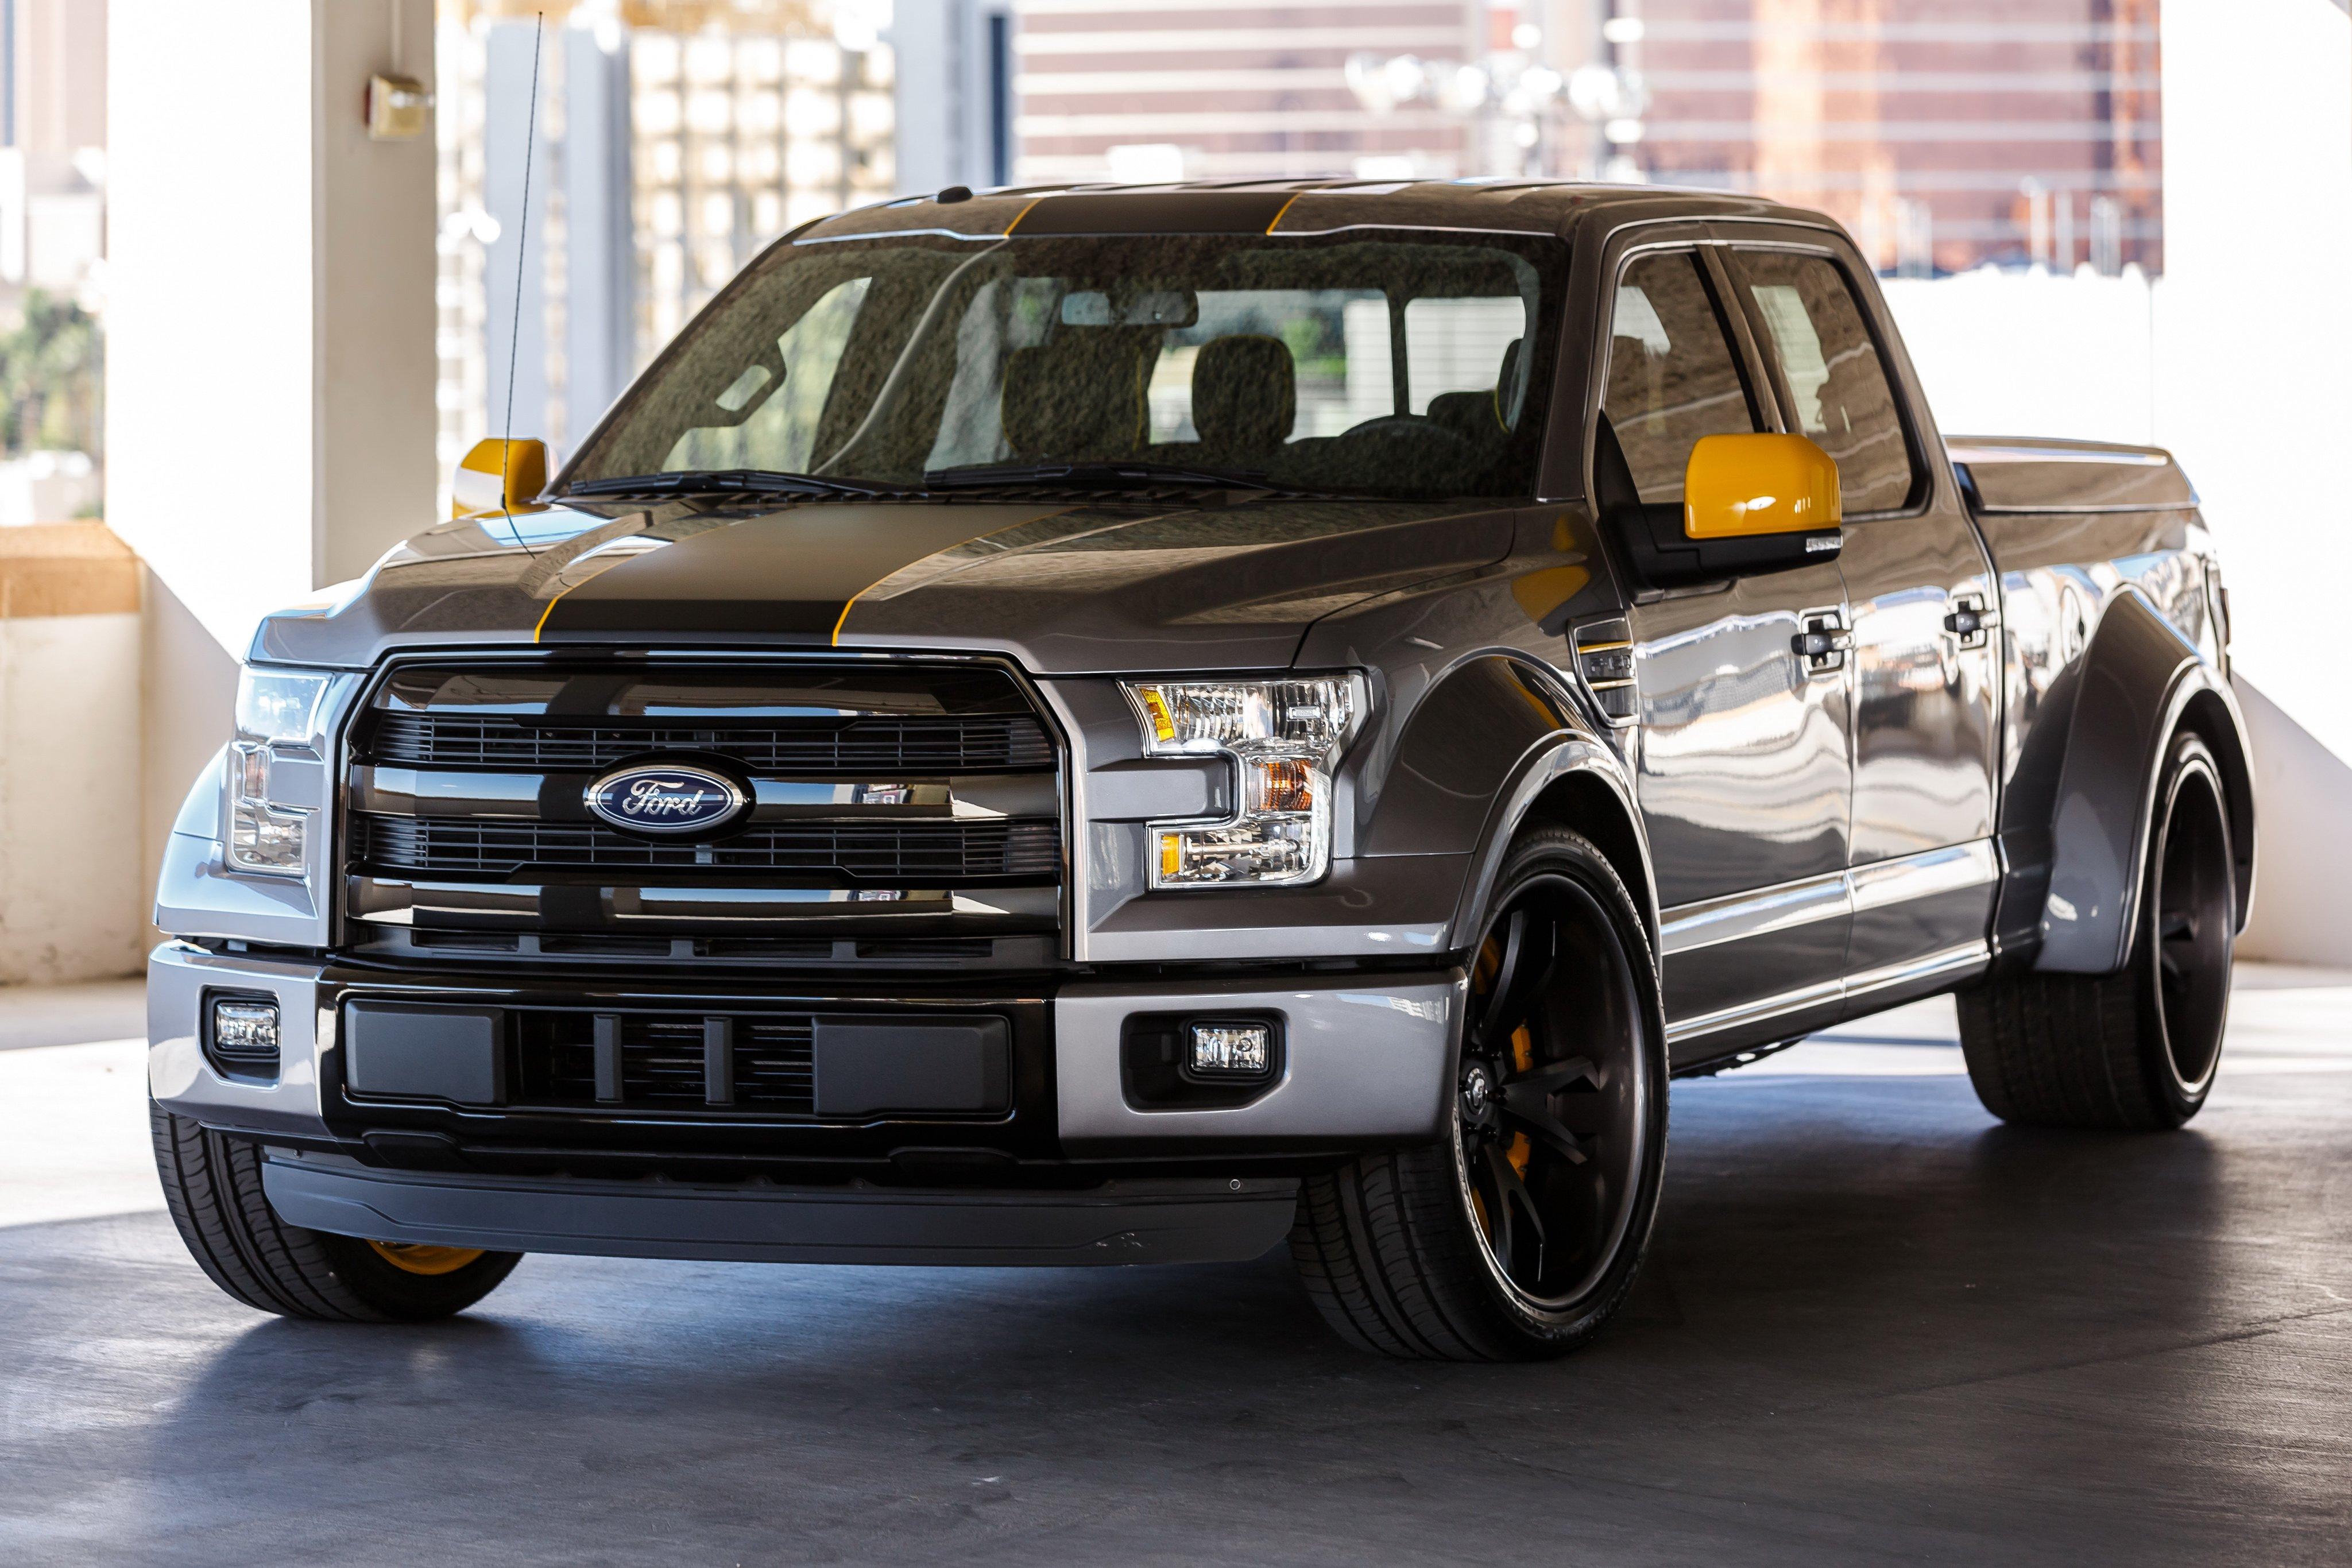 2015 ford f 150 widebody king tsdesigns tuning muscle wallpaper 4096x2731 527899 wallpaperup. Black Bedroom Furniture Sets. Home Design Ideas